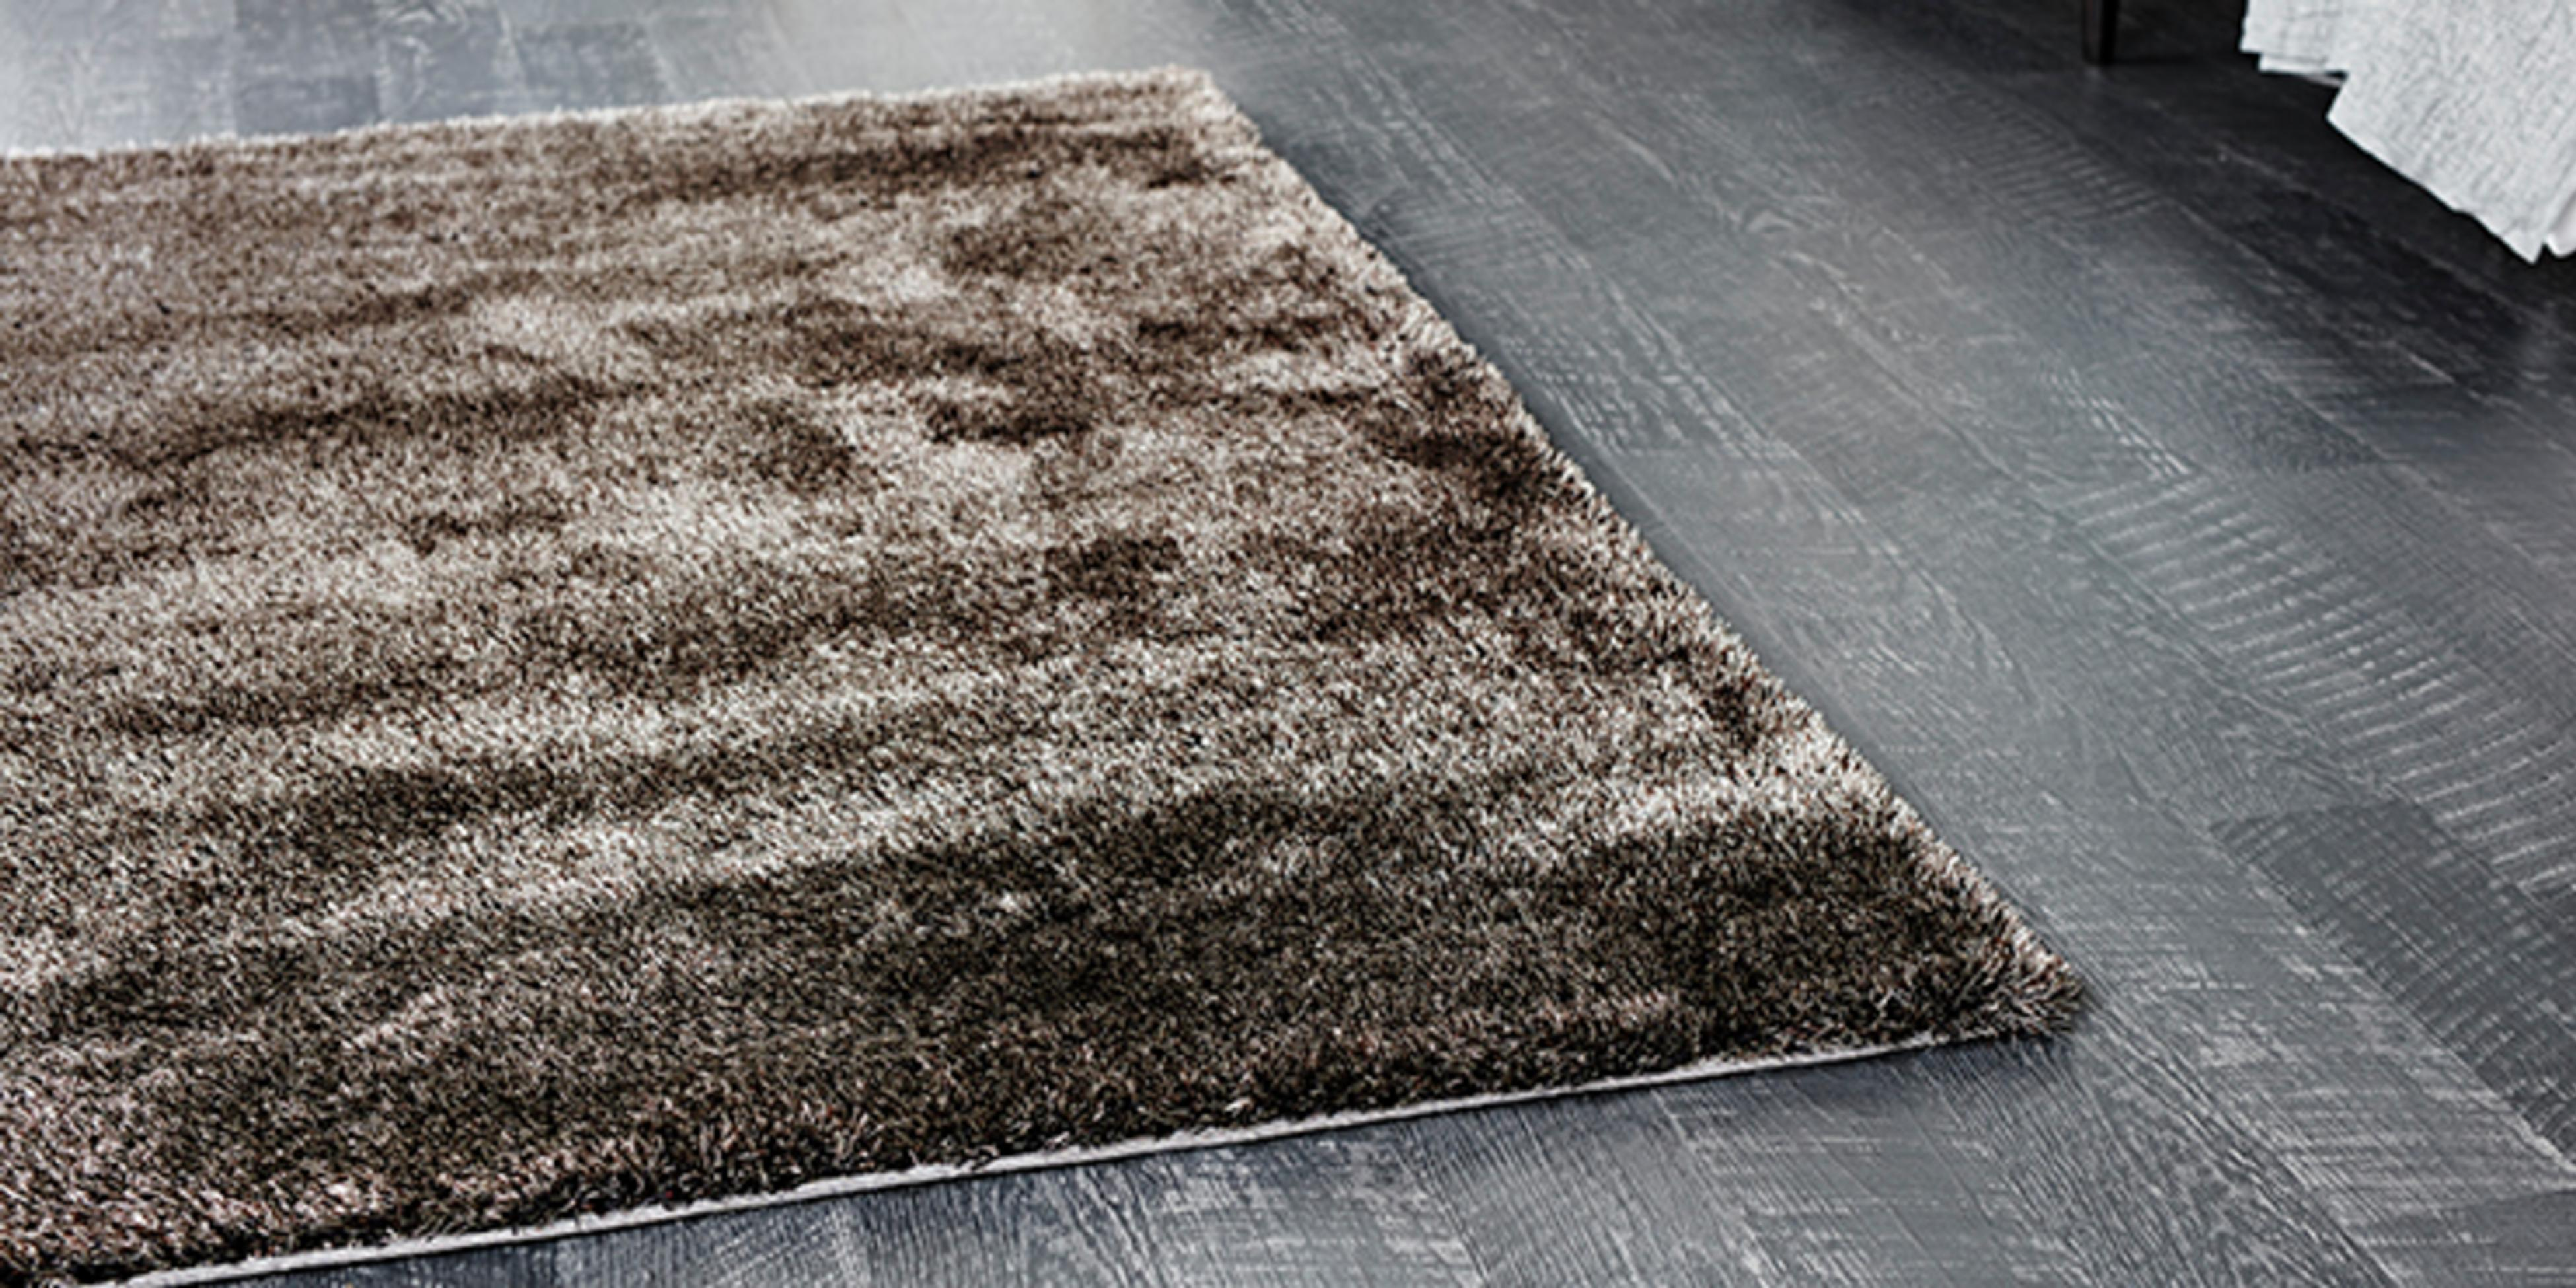 Shaggy rug in a living room with timber floorboards